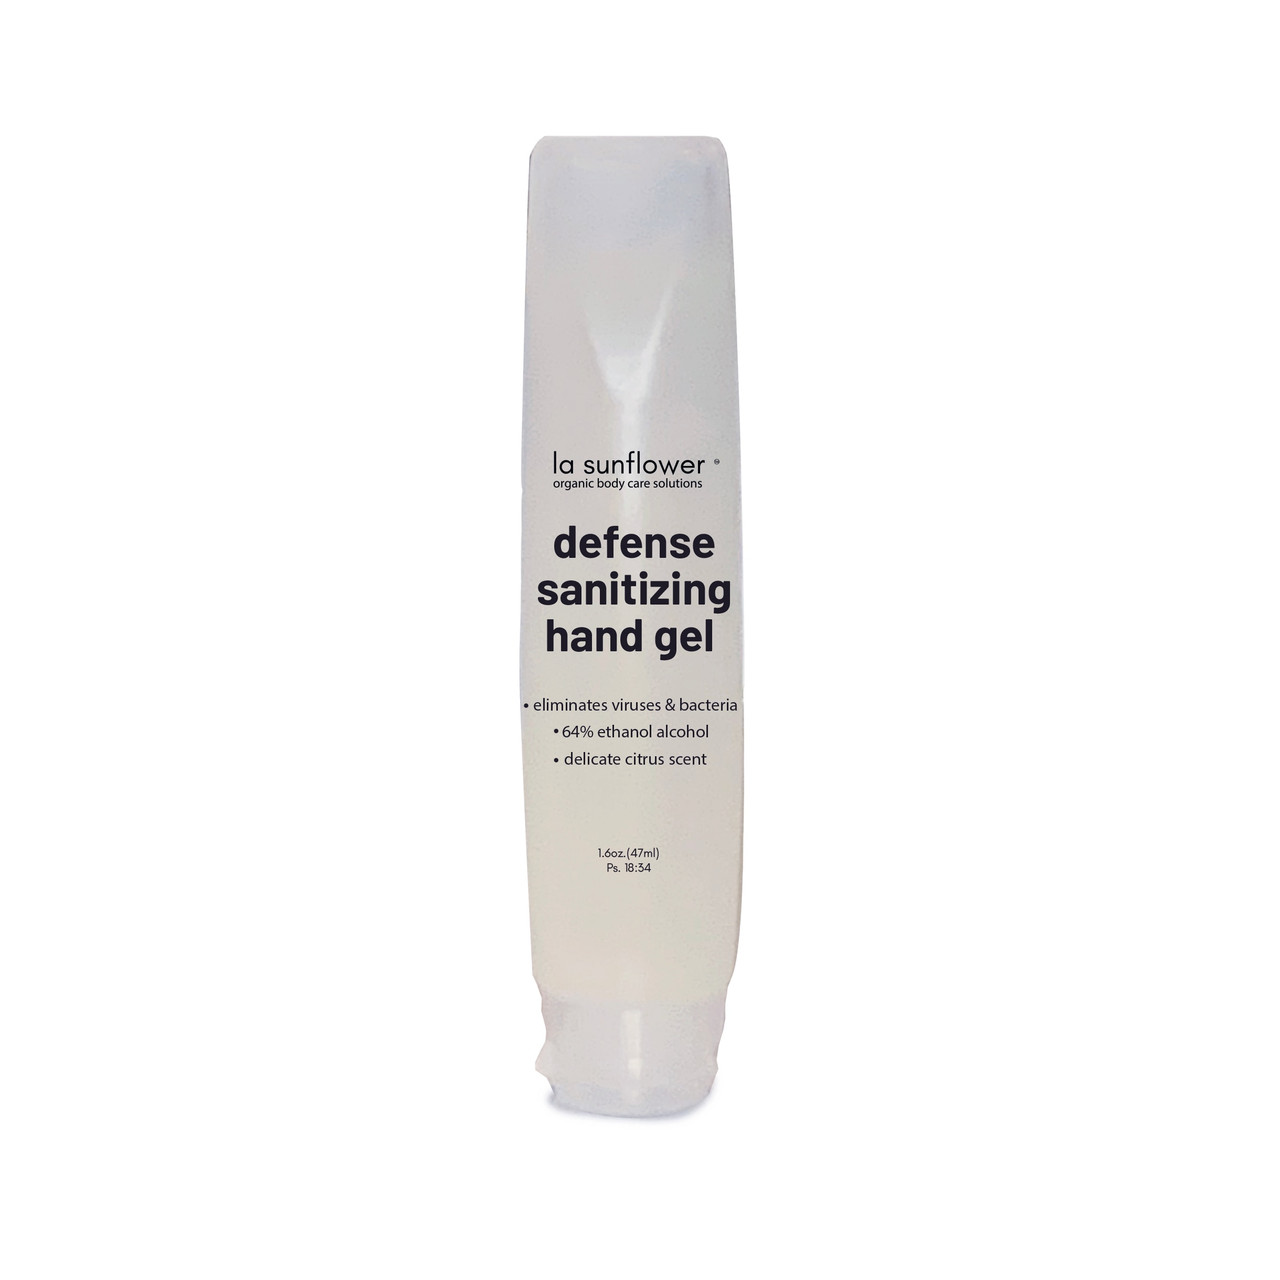 A powerful 64% alcohol and citrus gel for on-the-go cleansing of hands and surfaces that leaves skin moisturized. Perfect for slipping in a pocket, purse or back pack.